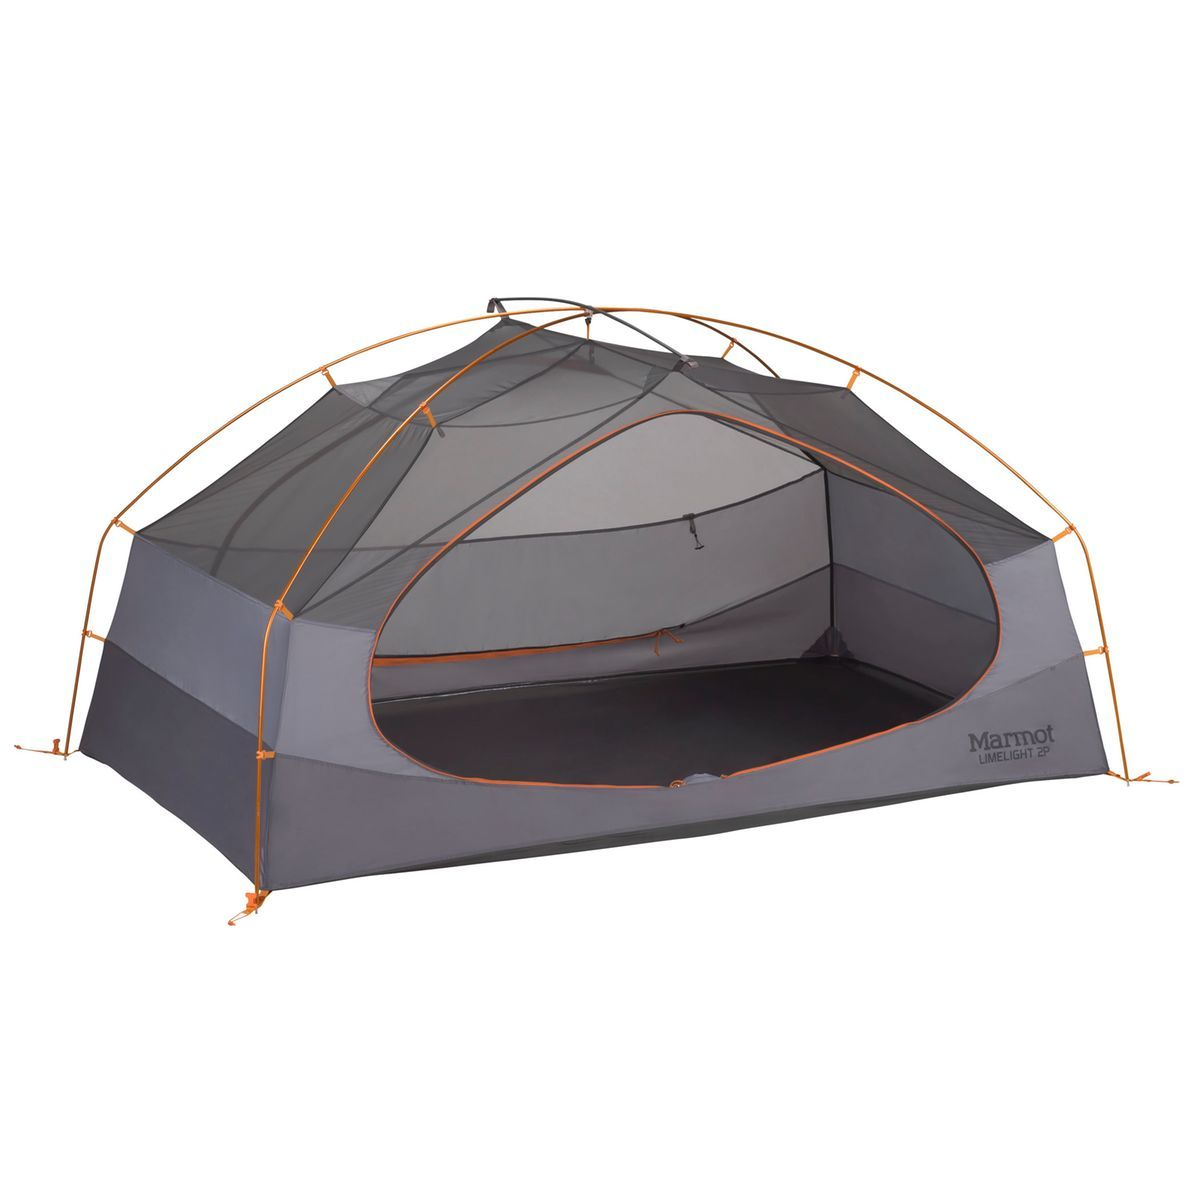 Limelight 2p Tente Orange Rouge Taille 2 Places Tentes Camping Camping Tente